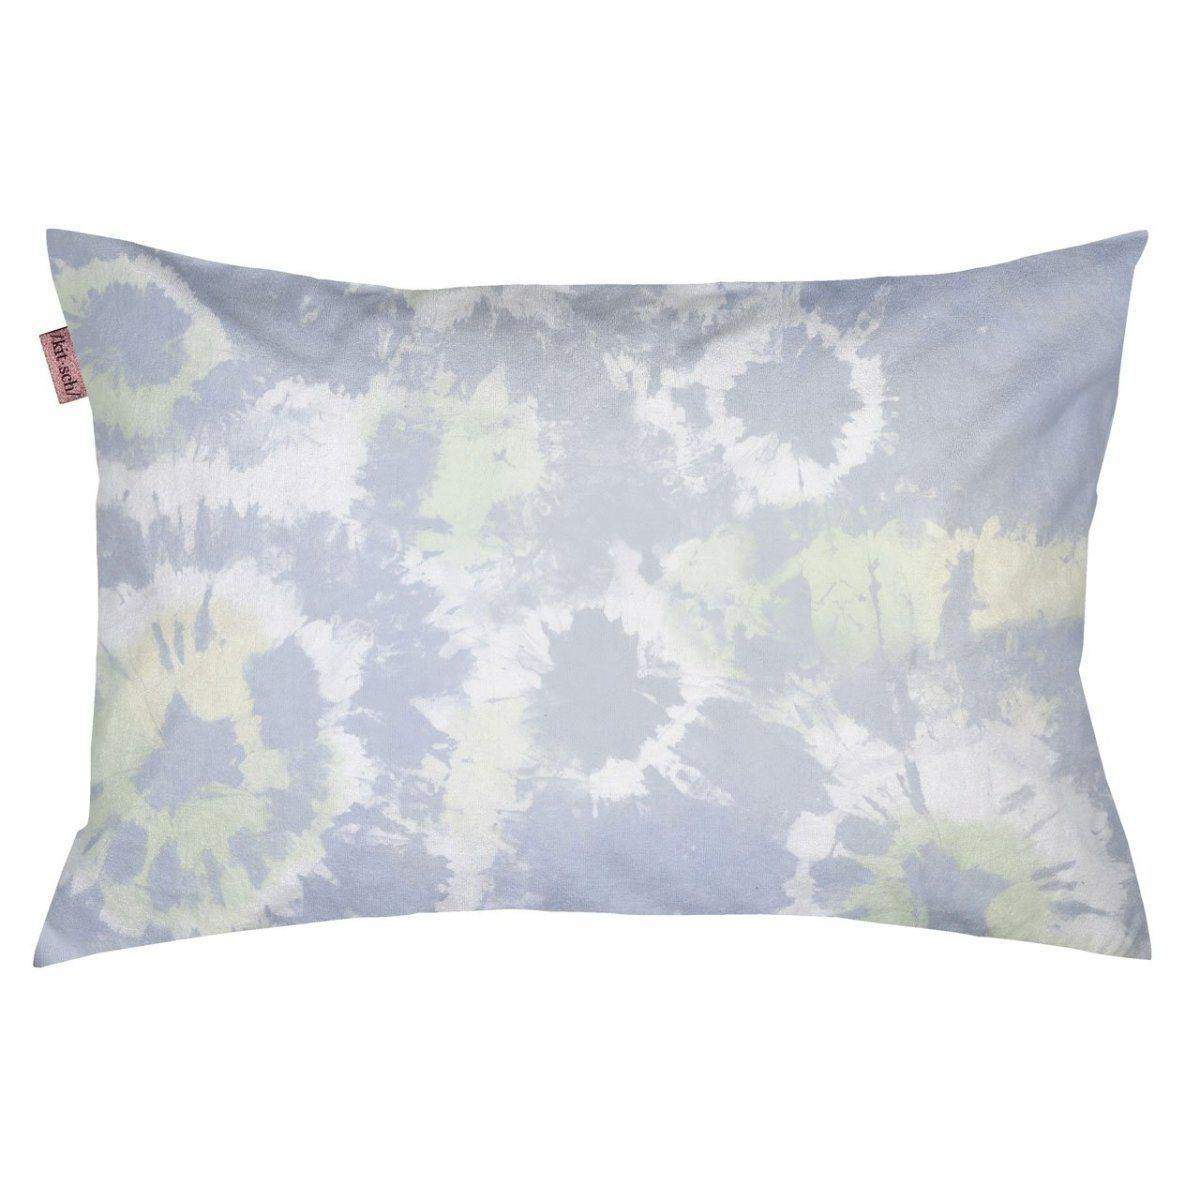 Towel Pillow Cover - Tie Dye - KITSCH